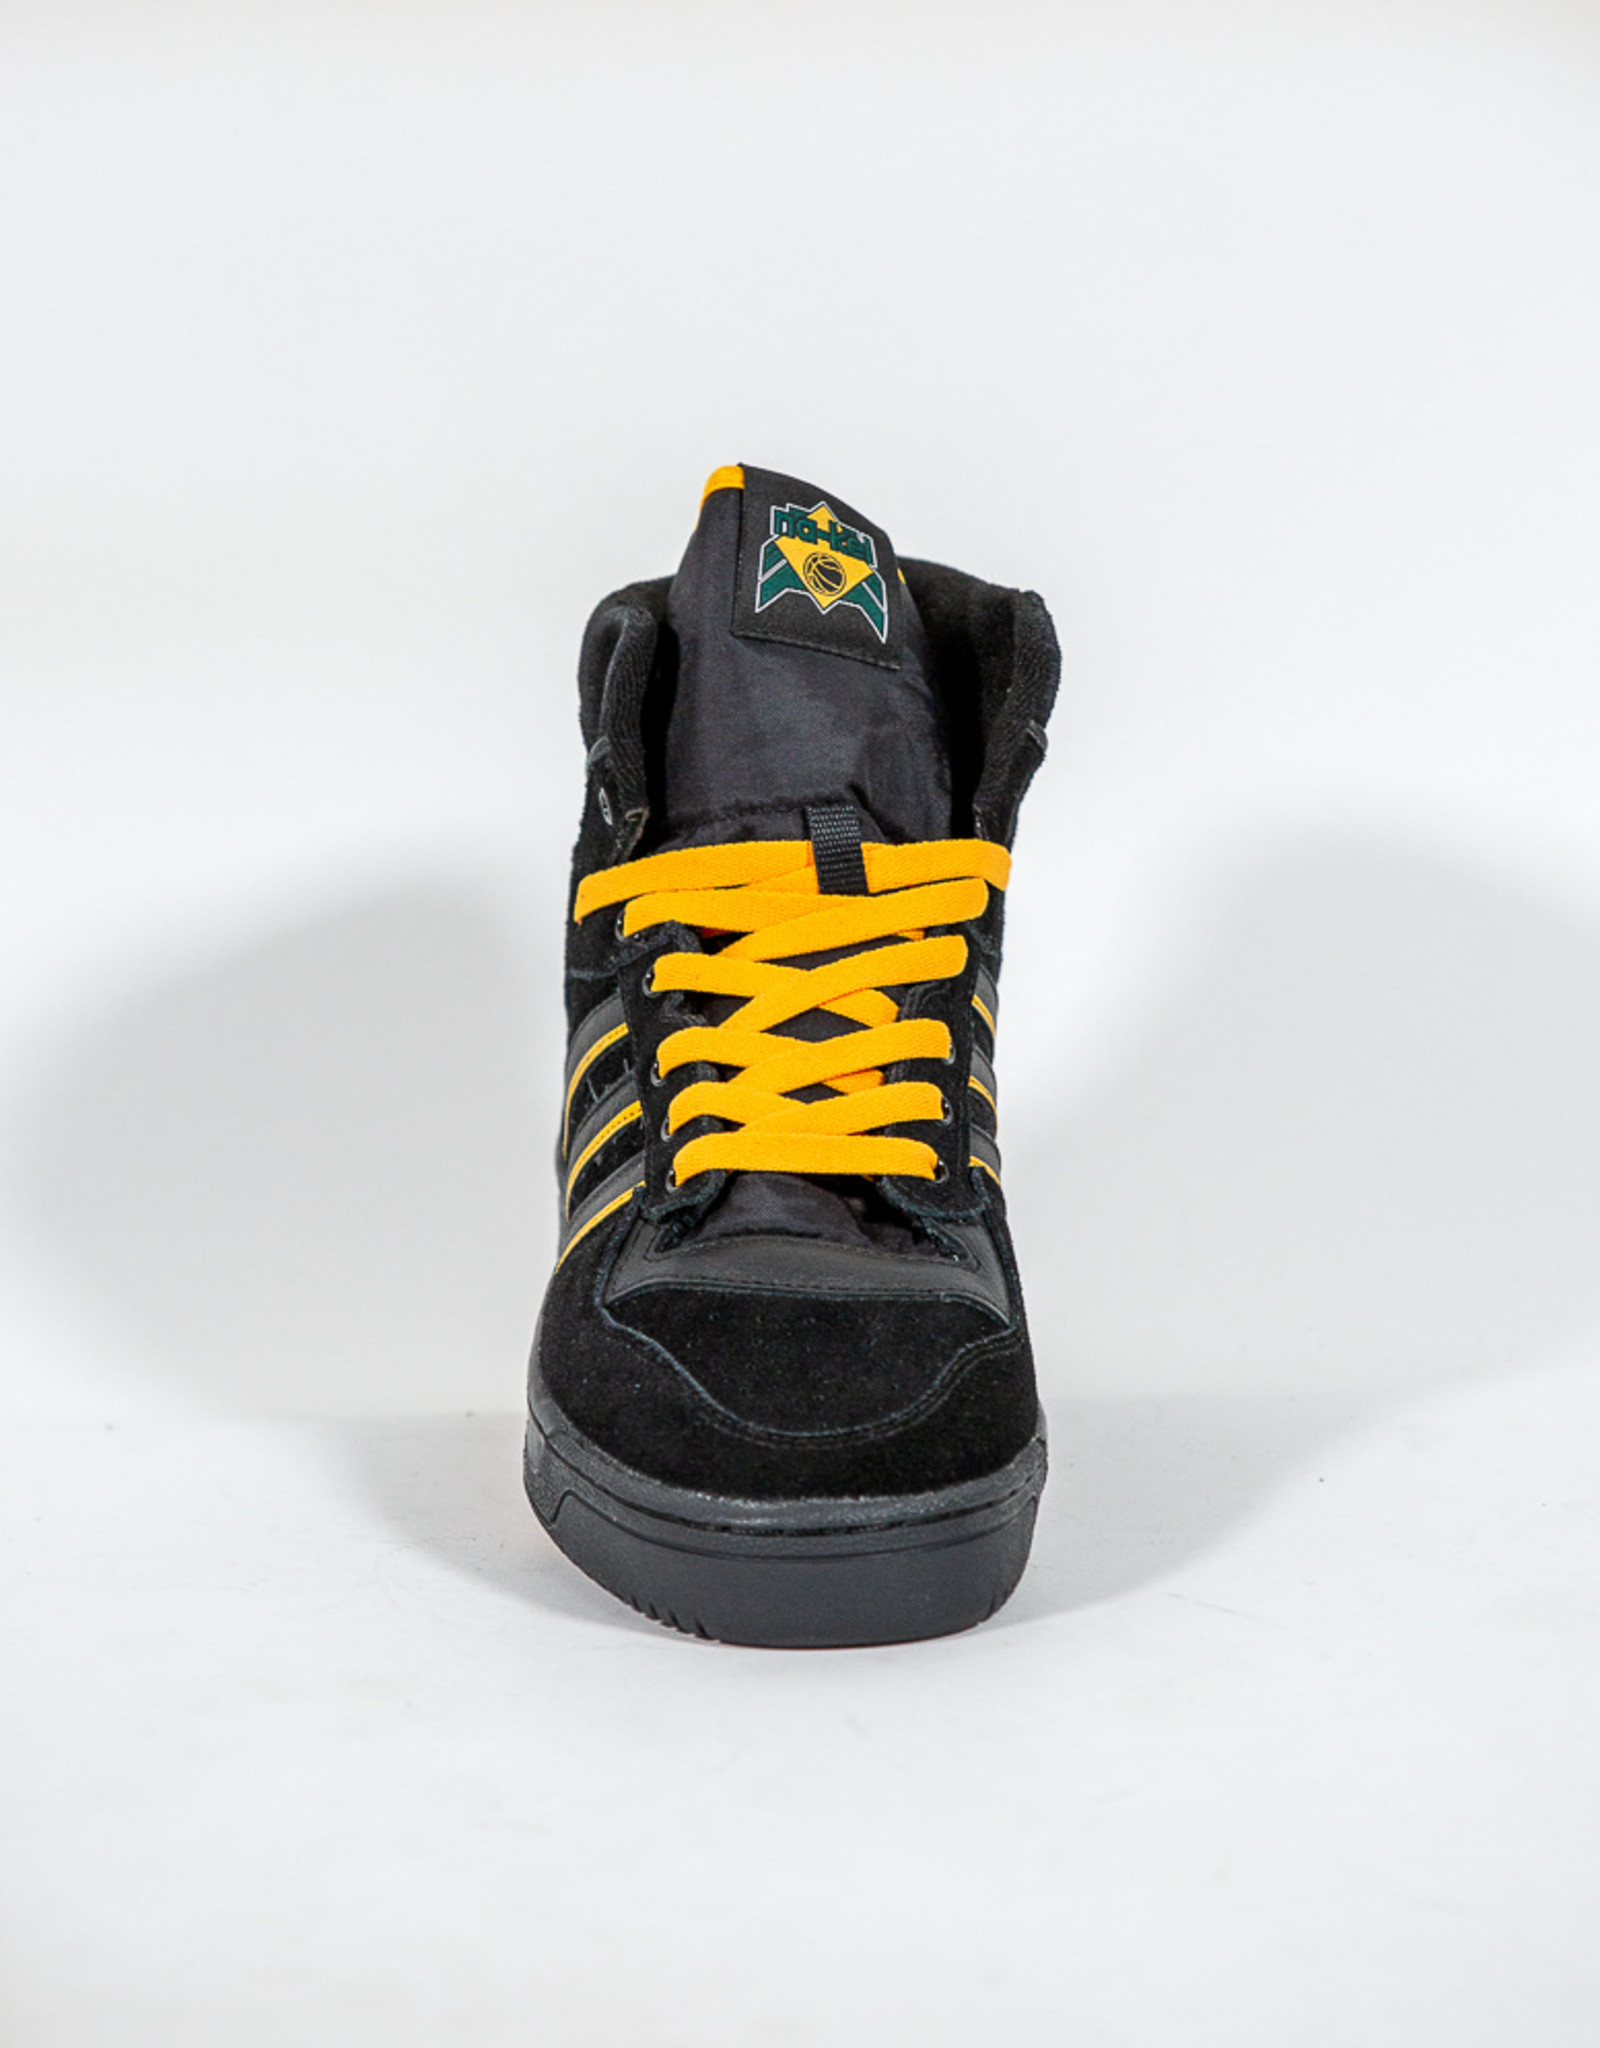 ADIDAS ADIDAS RIVALRY HI OG X NA-KEL - CORE BLACK/GOLD/GREEN